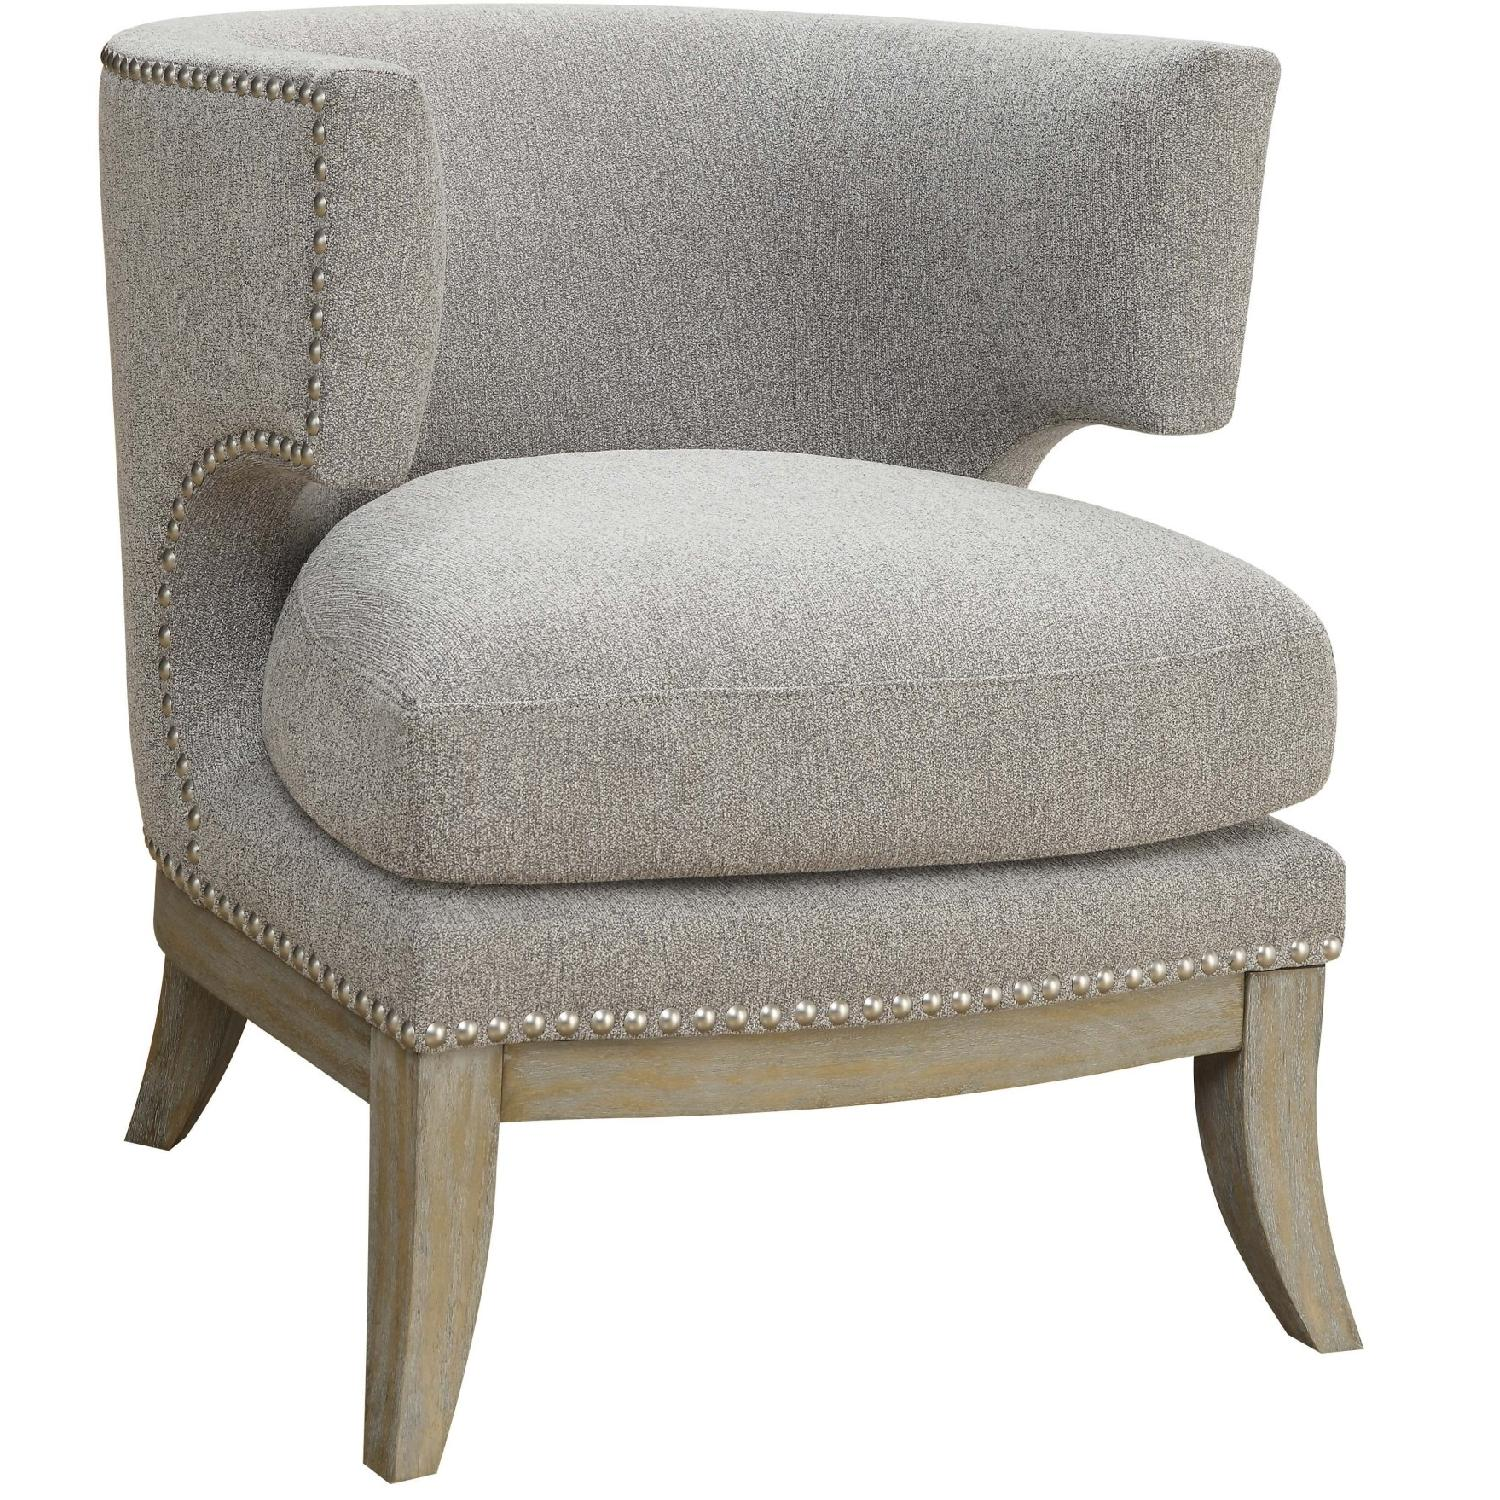 Barrel Back Modern Upholstered Accent Chair In Grey   AptDeco